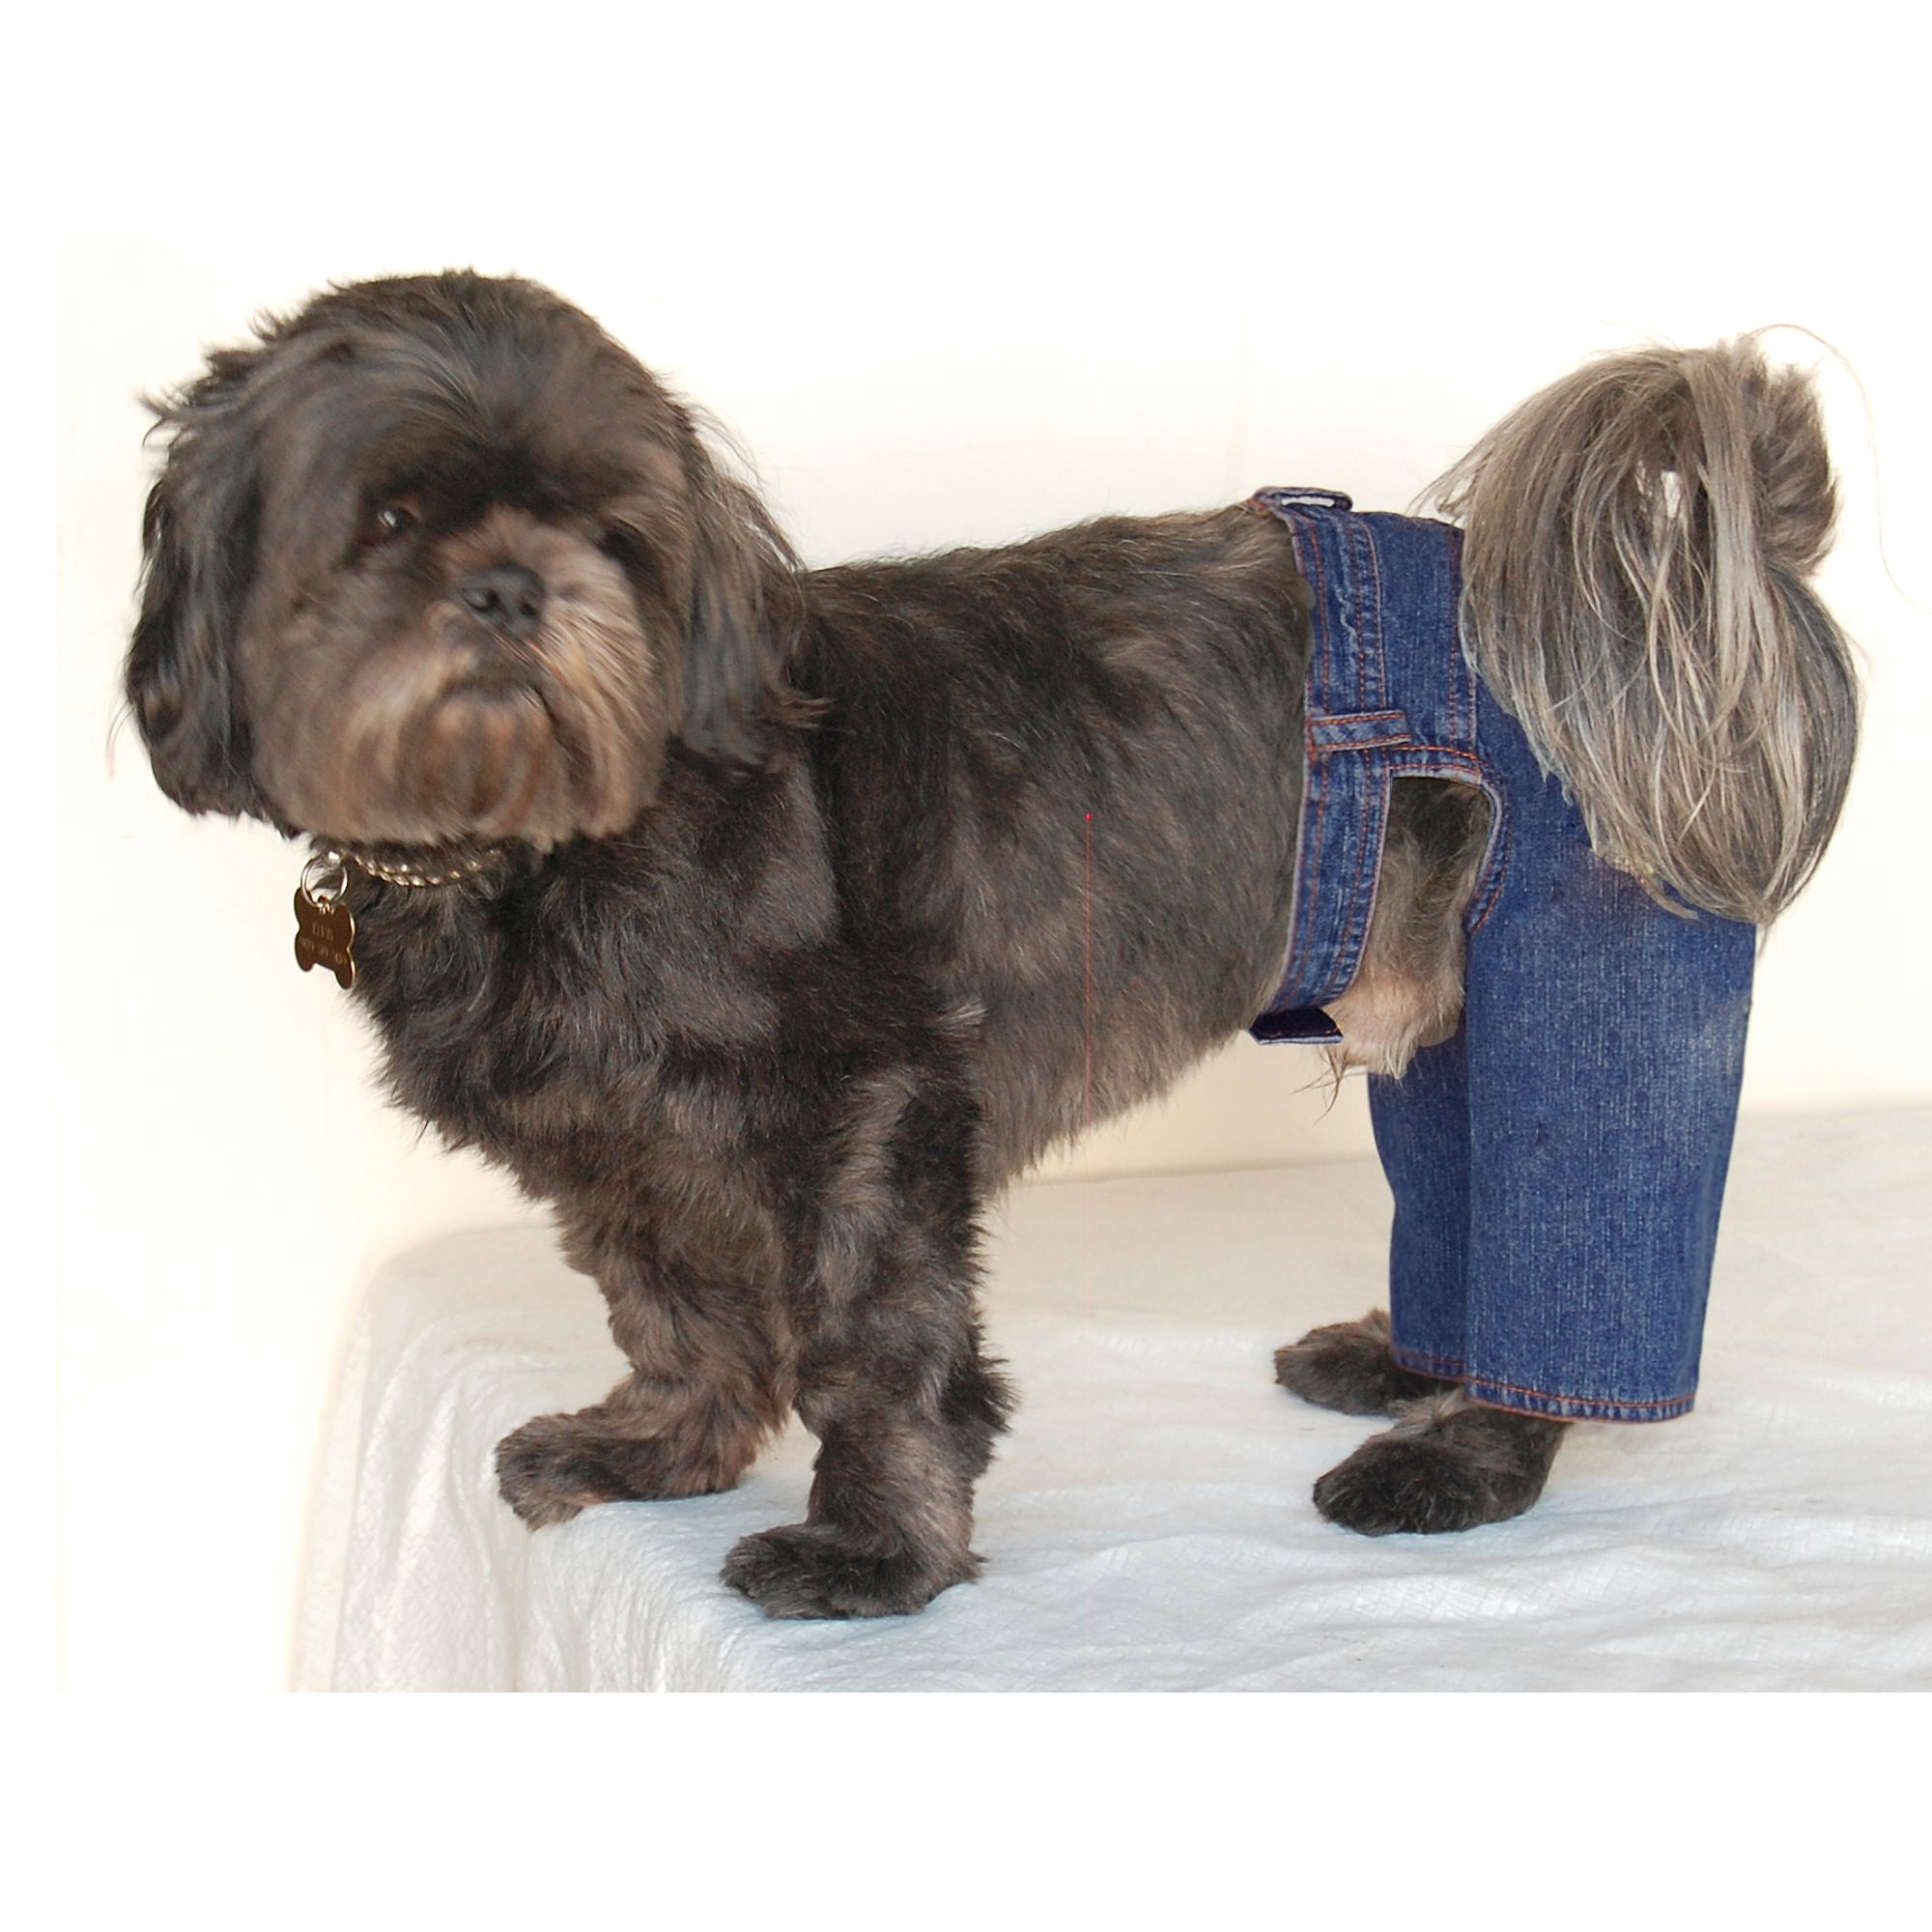 Blue Denim Jeans Pants For Puppy Dog Clothing Clothes - Small (Gift for Pet)